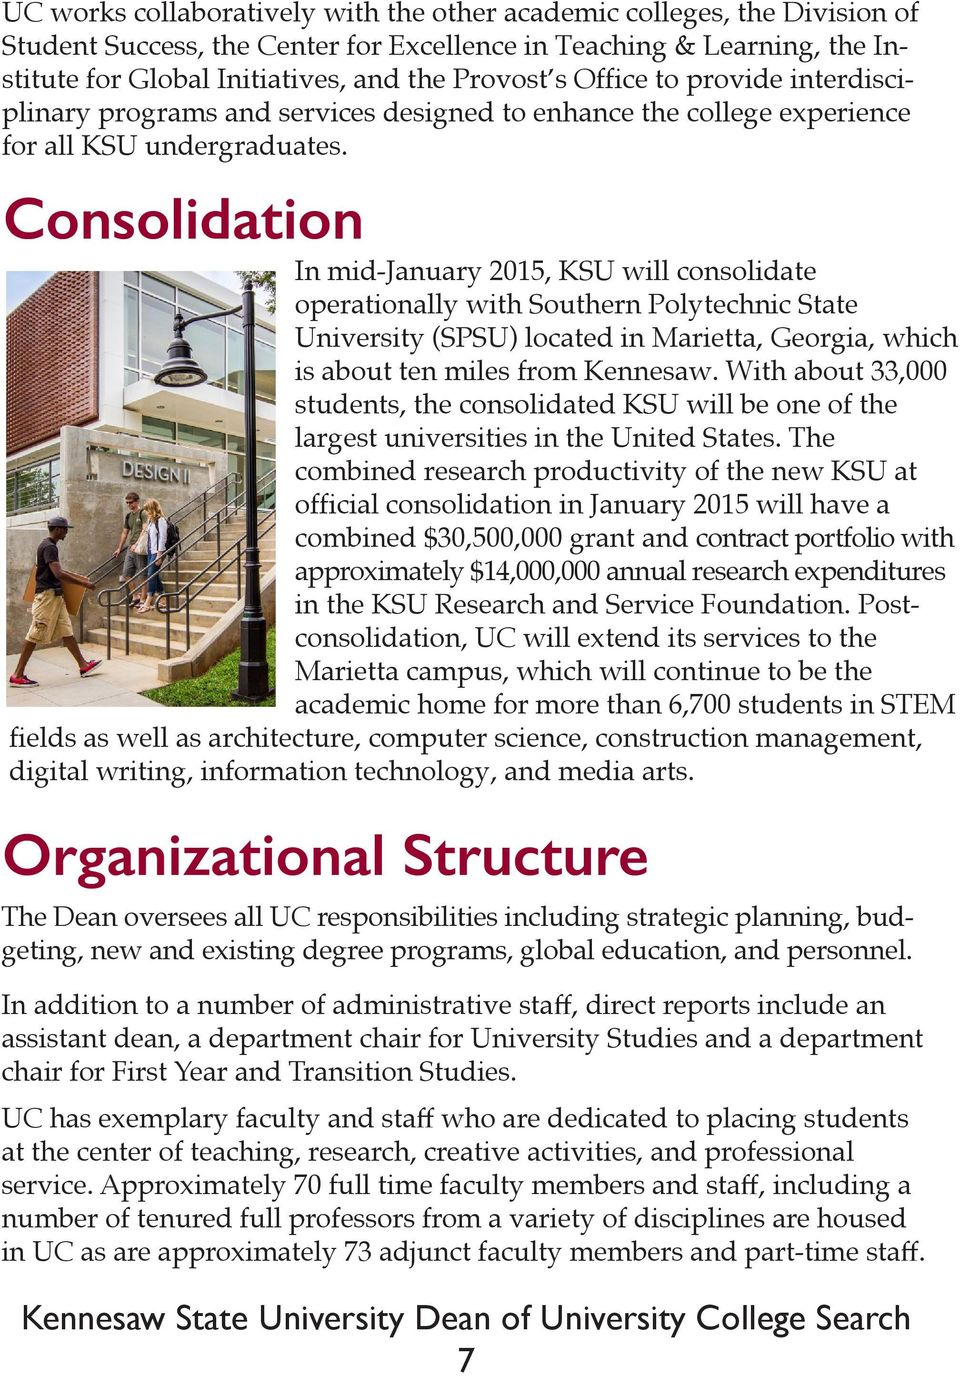 Consolidation In mid-january 2015, KSU will consolidate operationally with Southern Polytechnic State University (SPSU) located in Marietta, Georgia, which is about ten miles from Kennesaw.